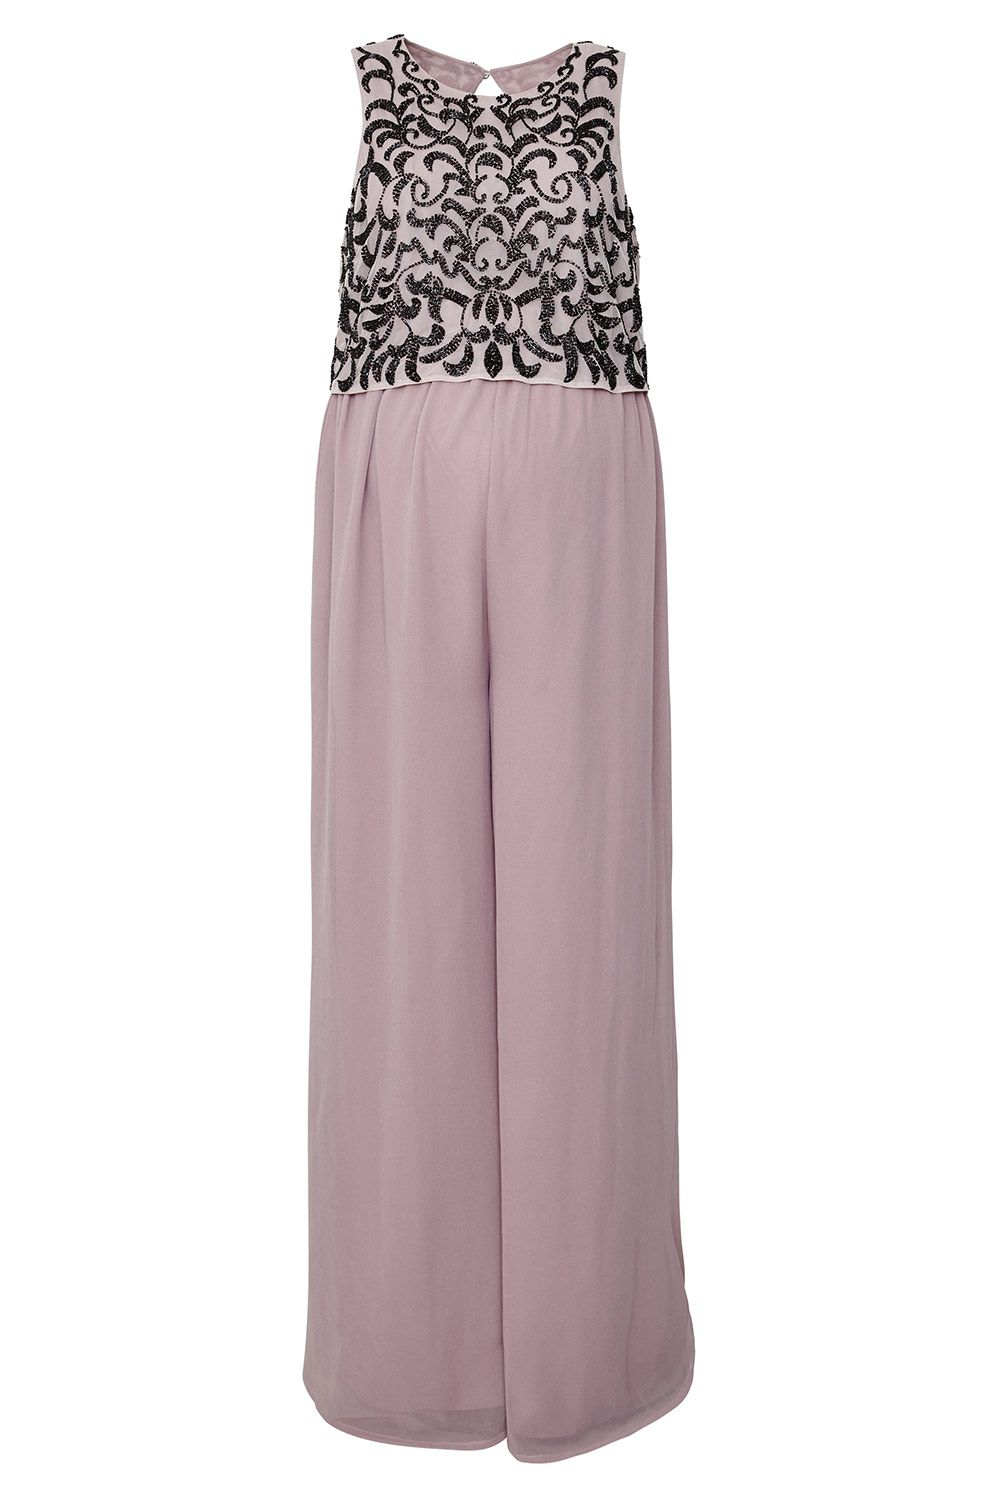 The Best Maternity Wedding Guest Dresses Maternity Jumpsuit - Maternity Wedding Guest Dress